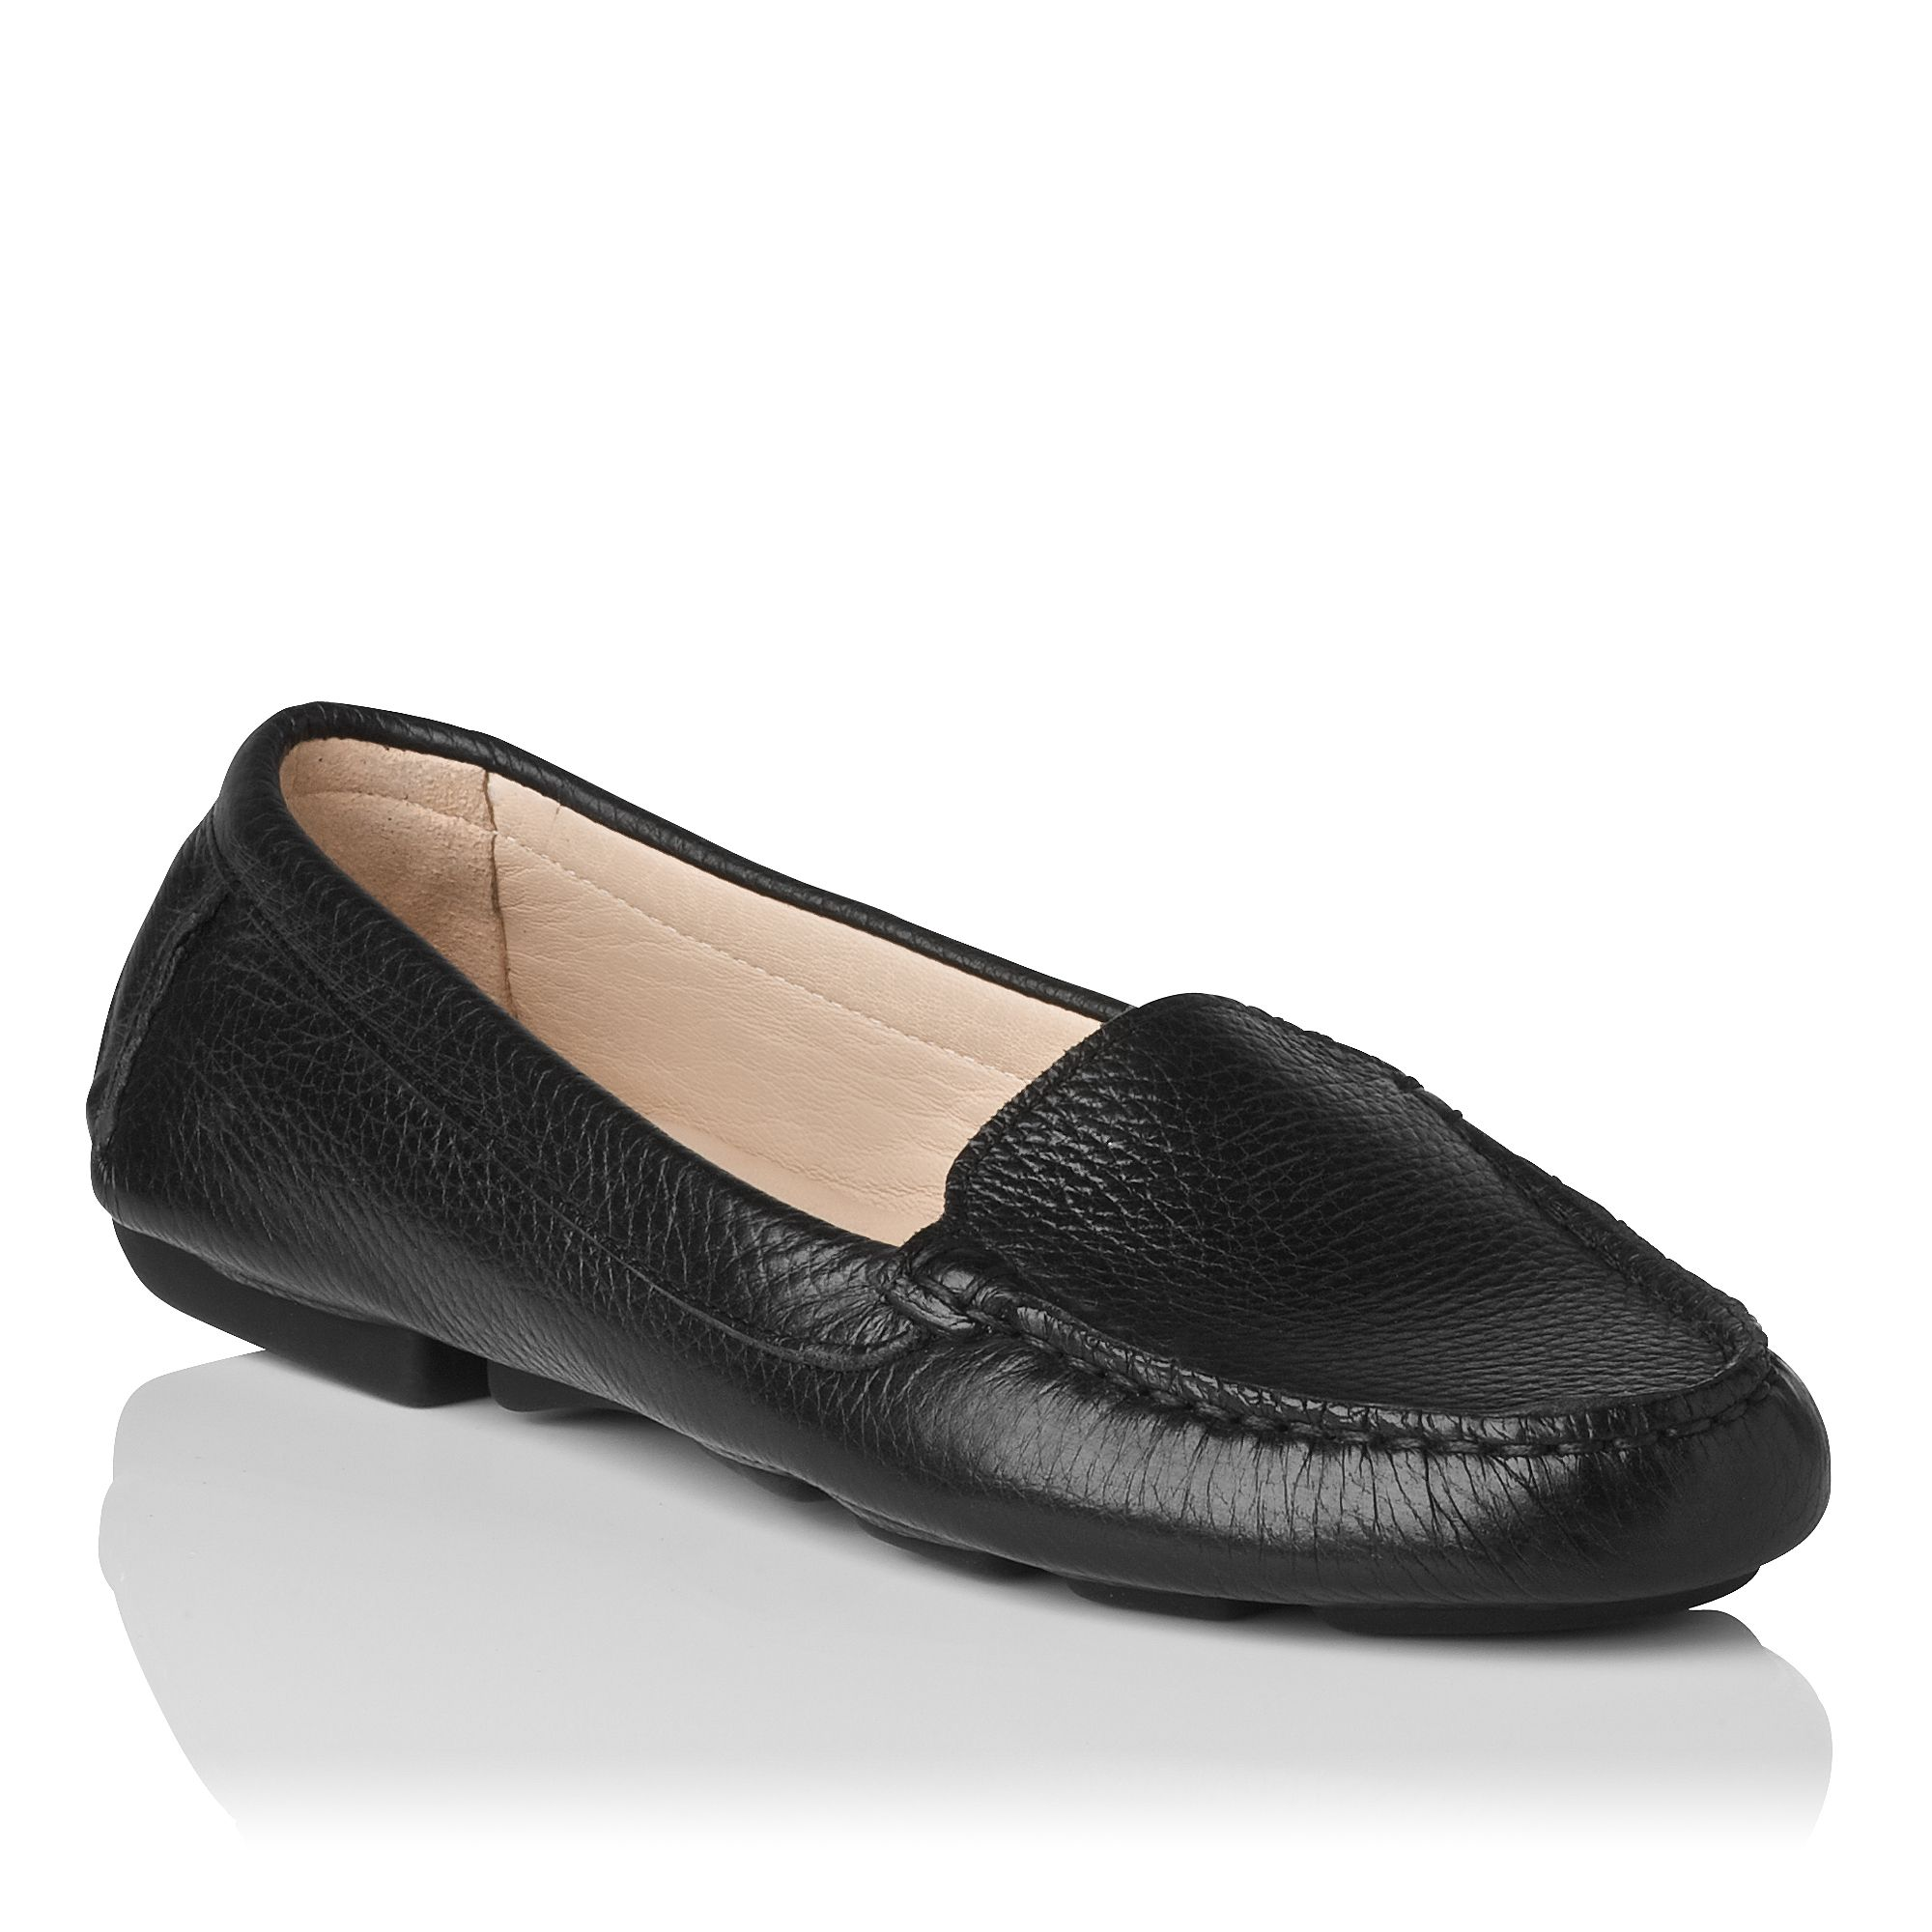 Gail flat shoes